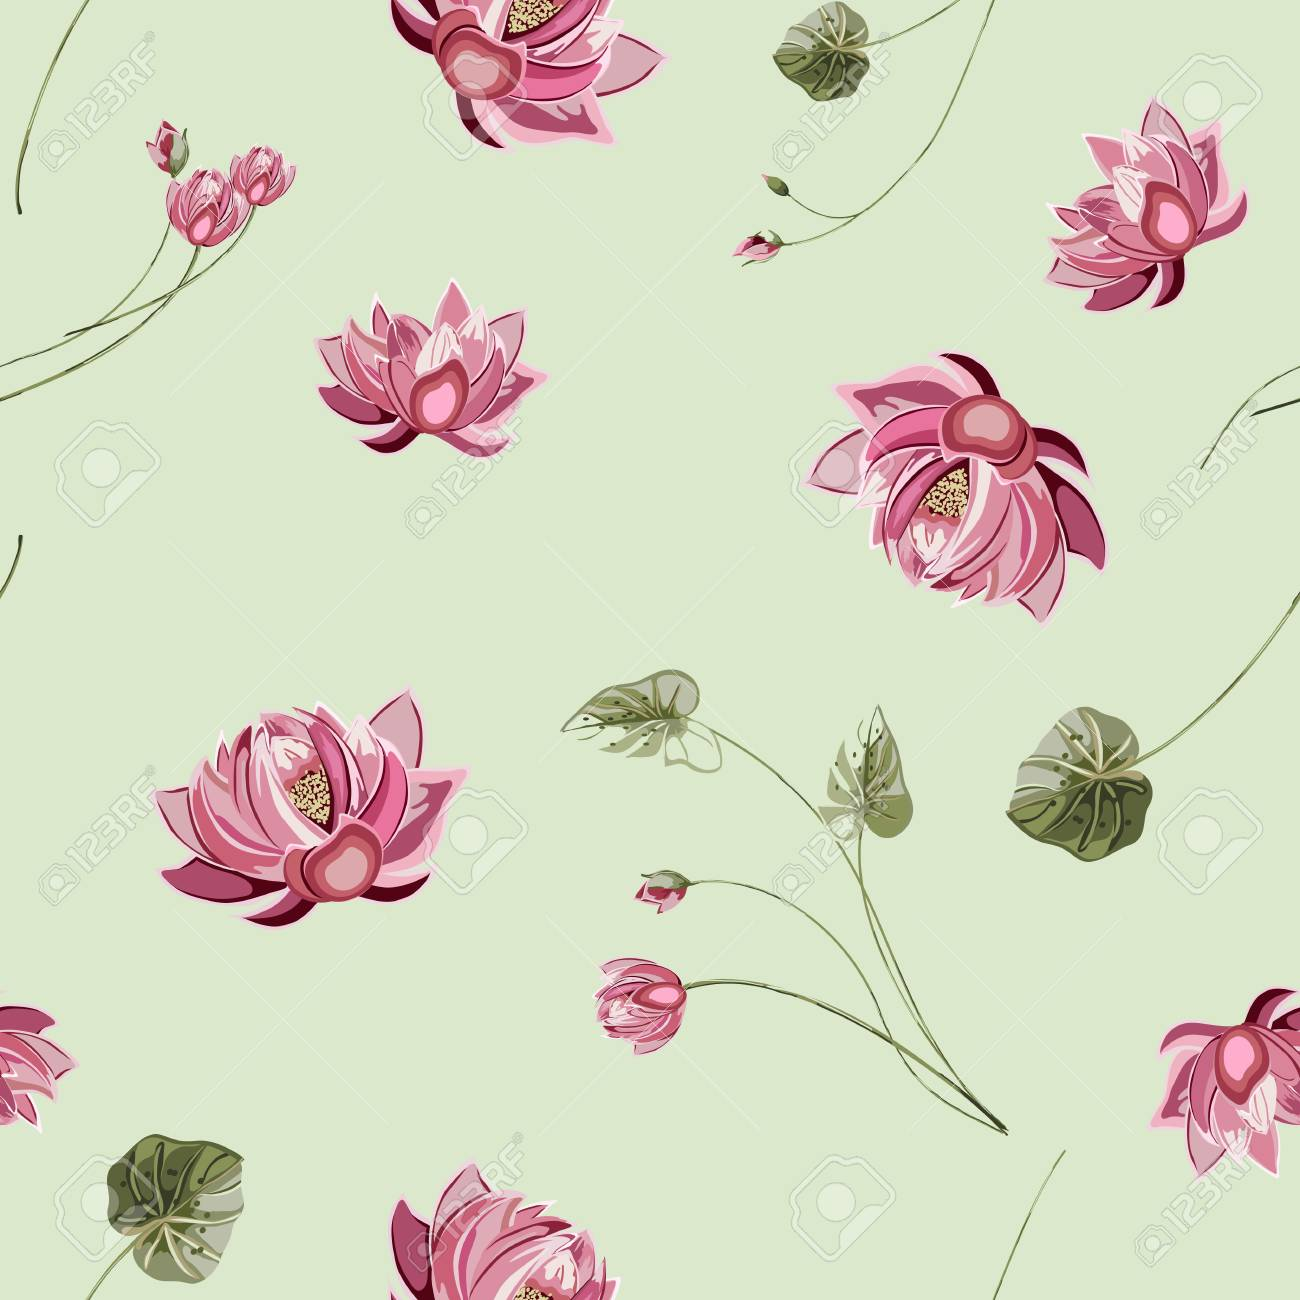 Trendy Floral Background With Lotus Flower And Green Leaves In